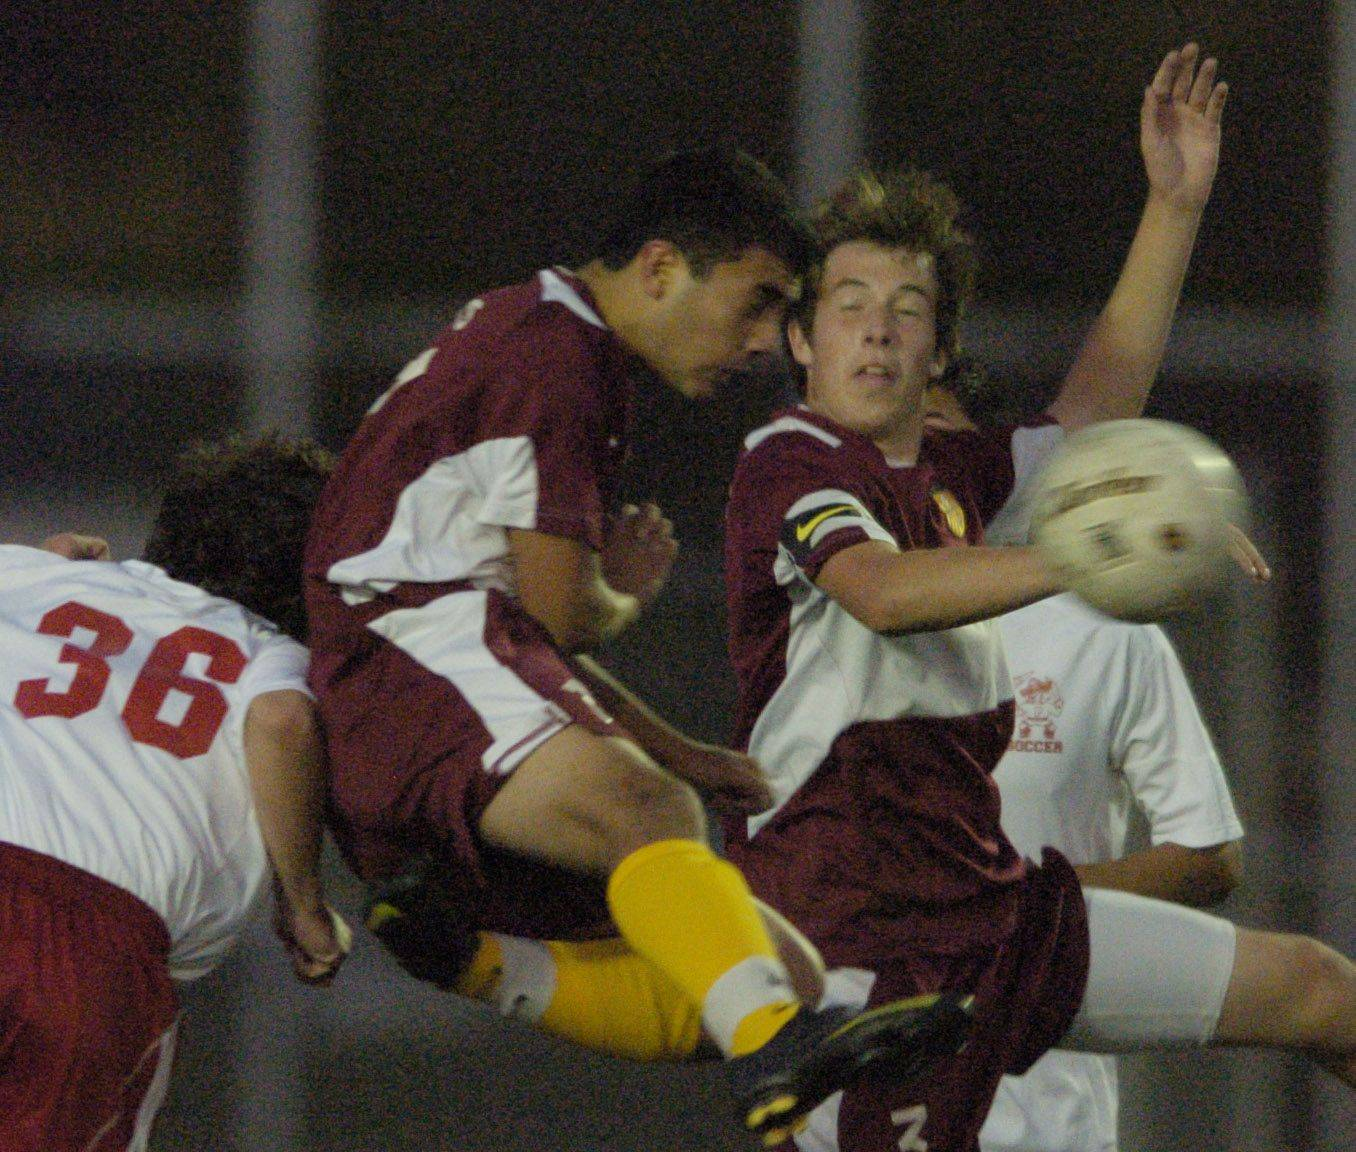 Schaumburg's Gus Alvarez, middle, gets the header between Palatine's Kyle Clancy and teammate Joey Faleni.